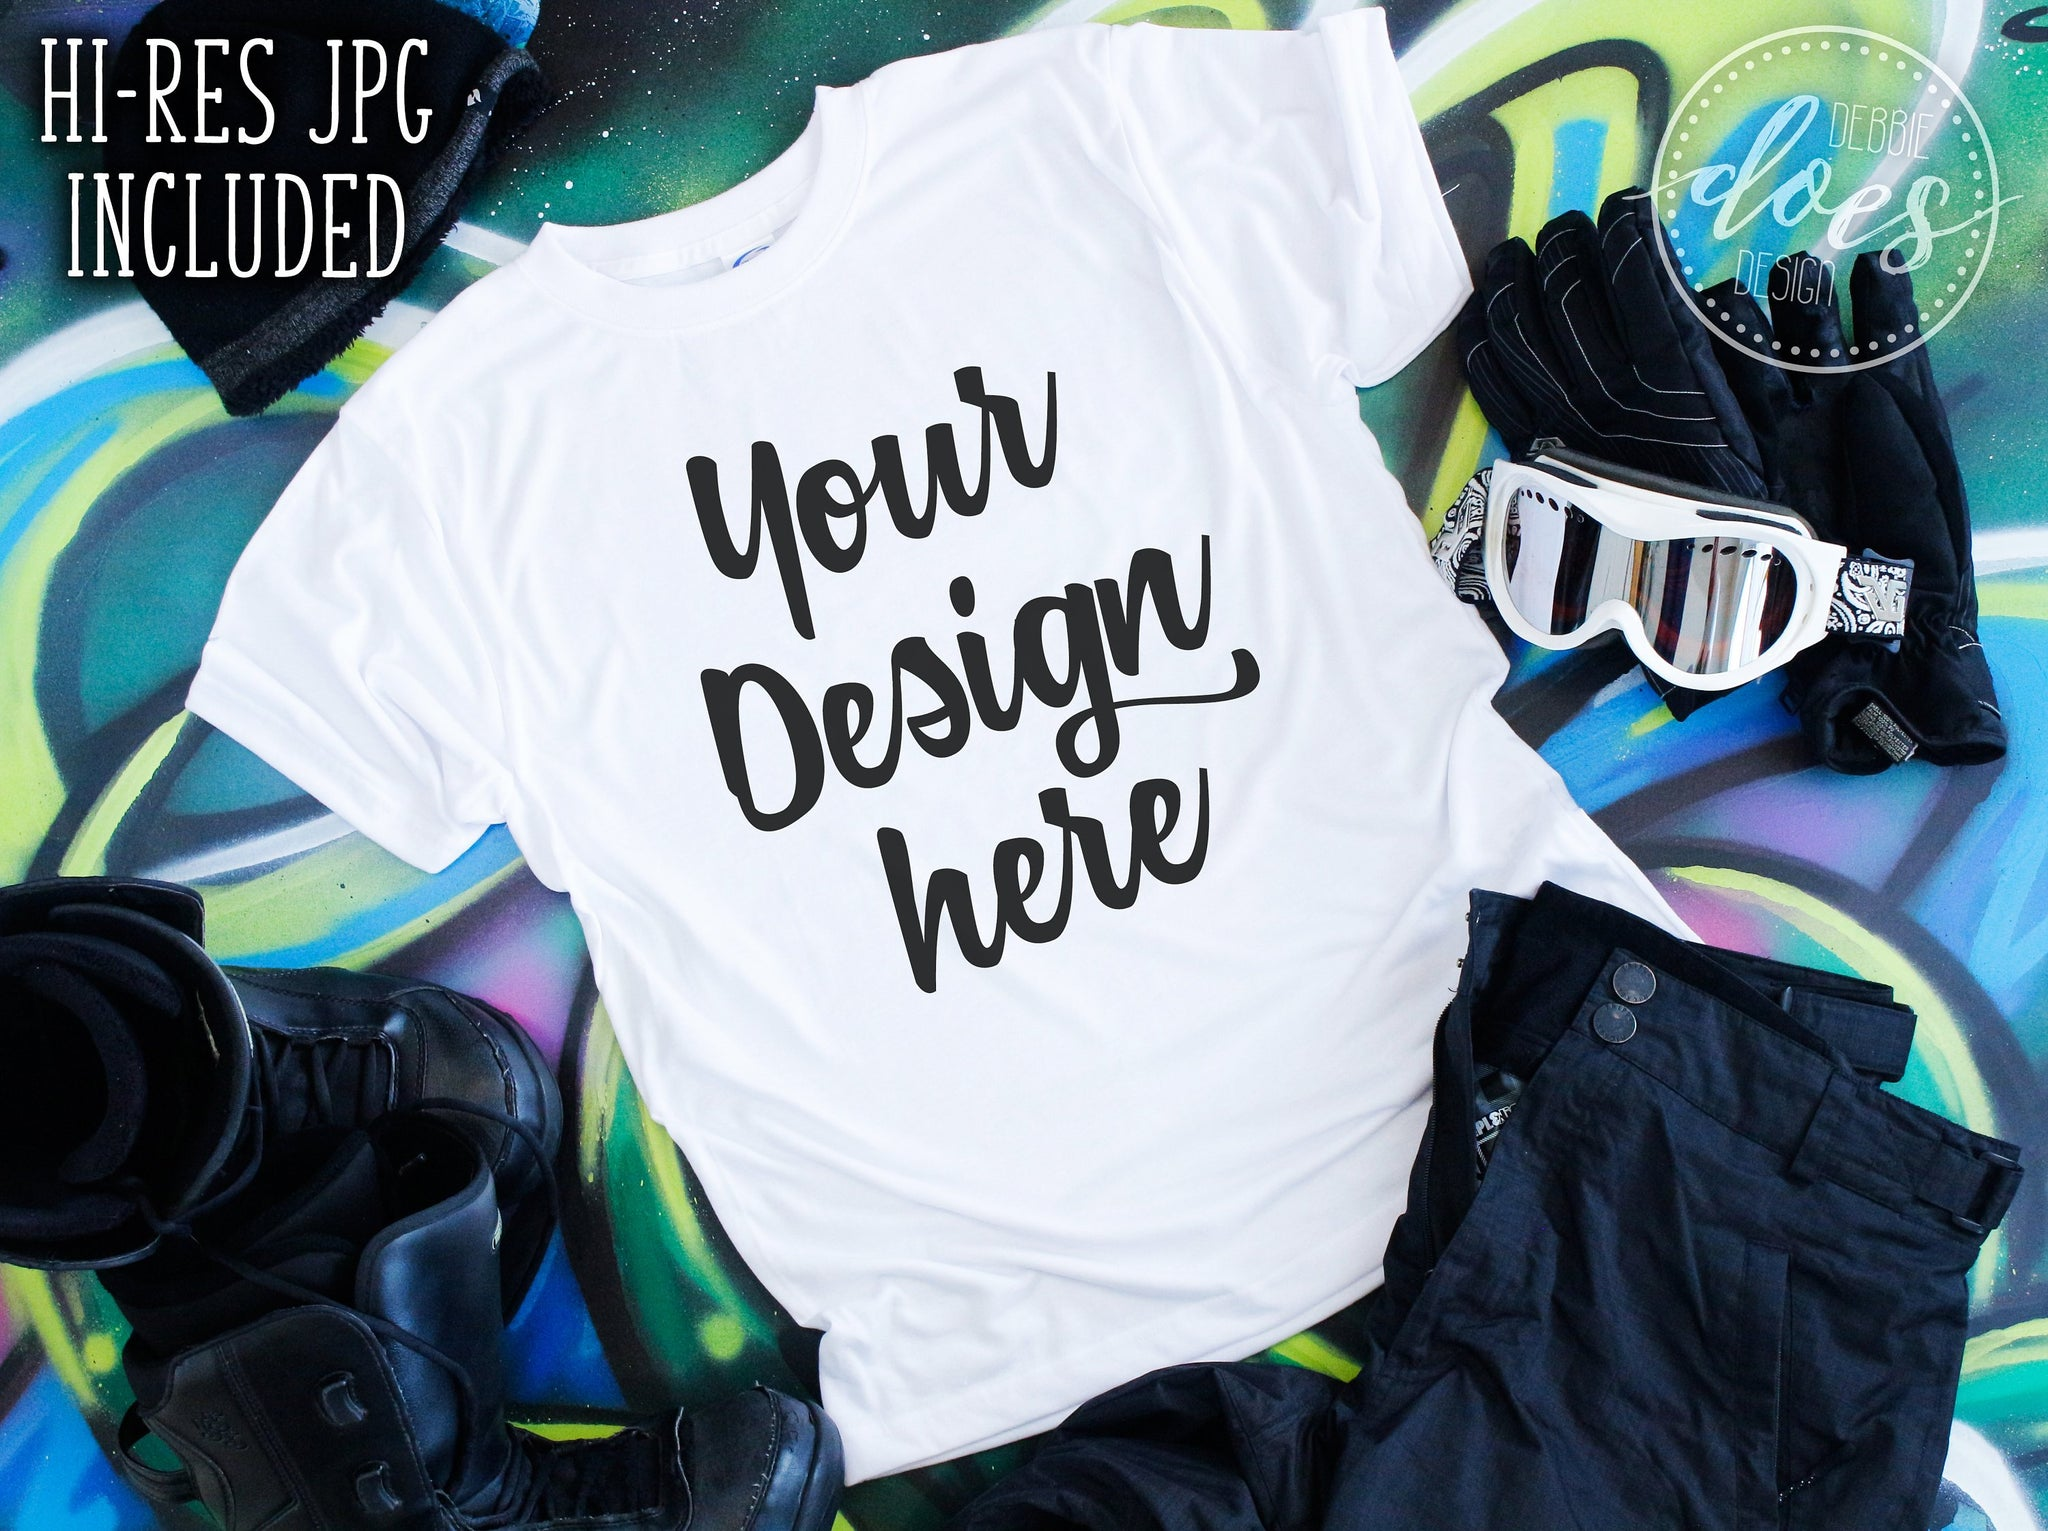 Snowboard Tee Shirt Mockup | White Tee Mock-Up | Blank Mock Up Photo Download